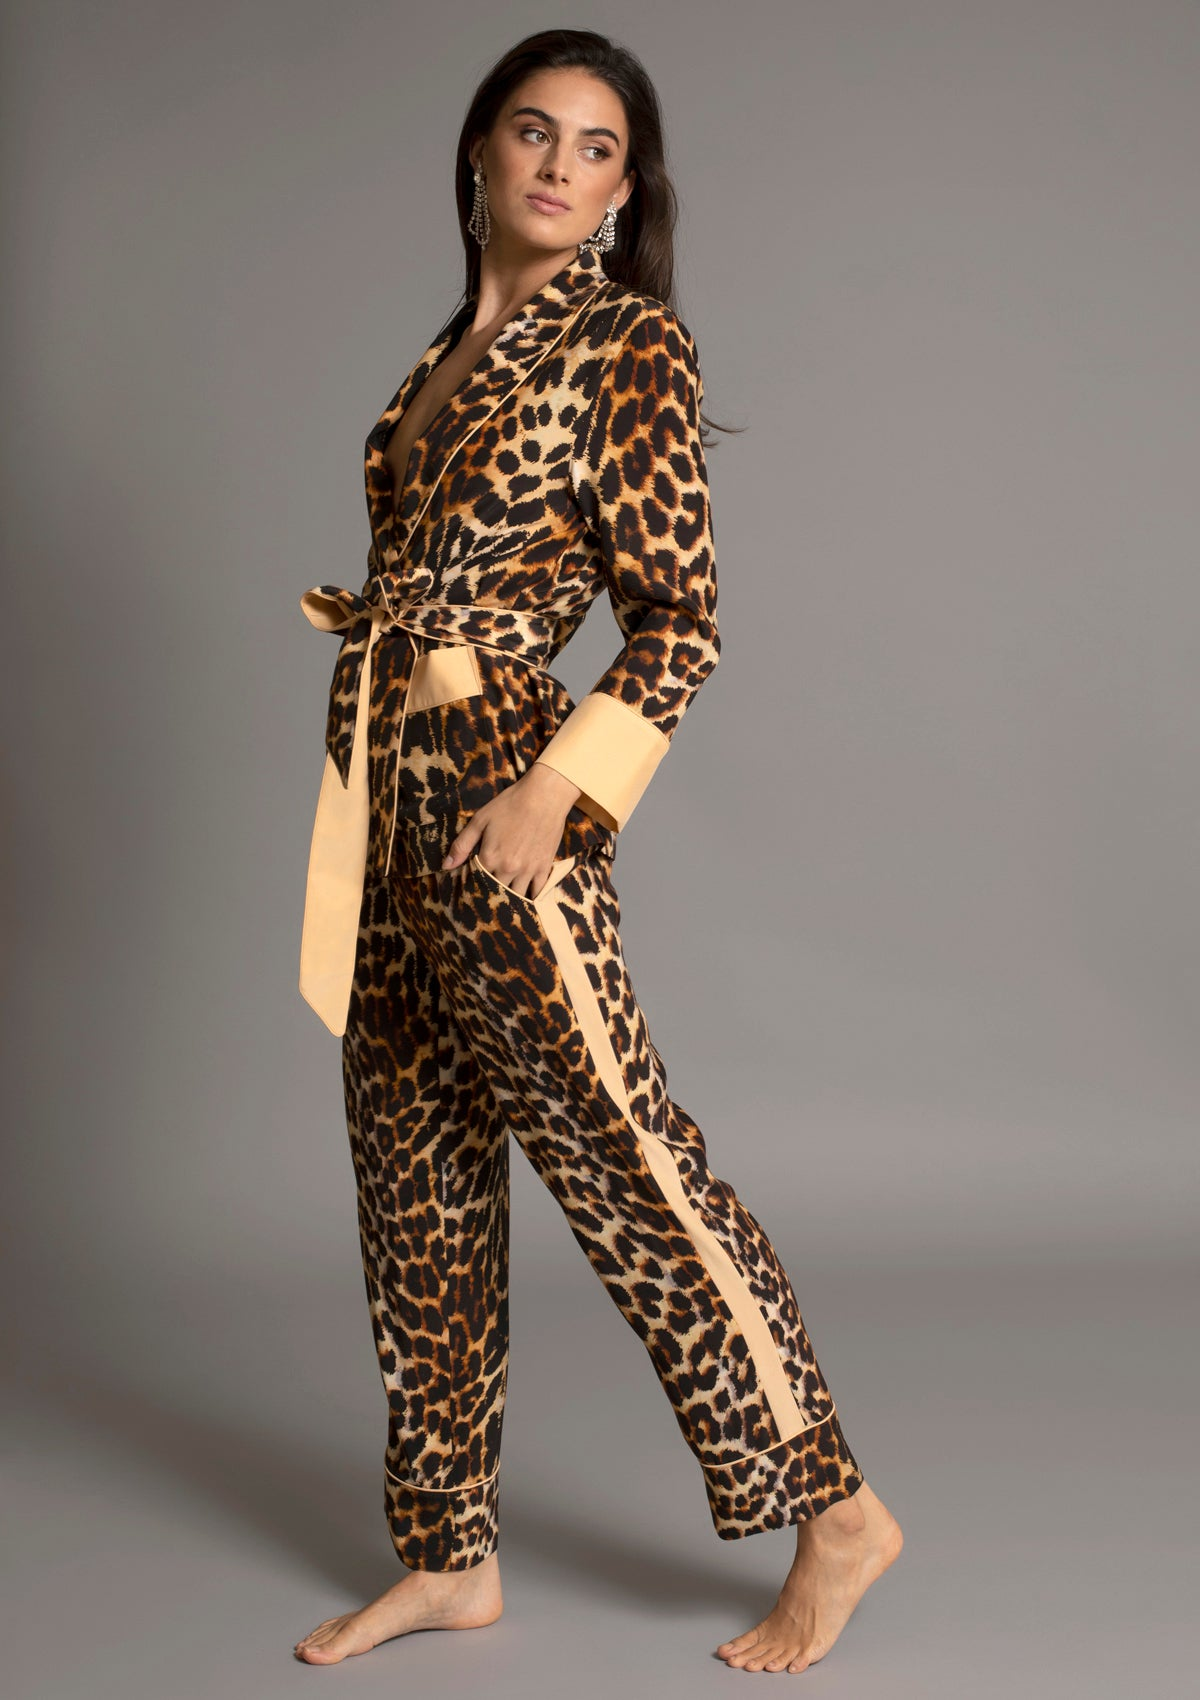 BRANDO JACKET in LEOPARD